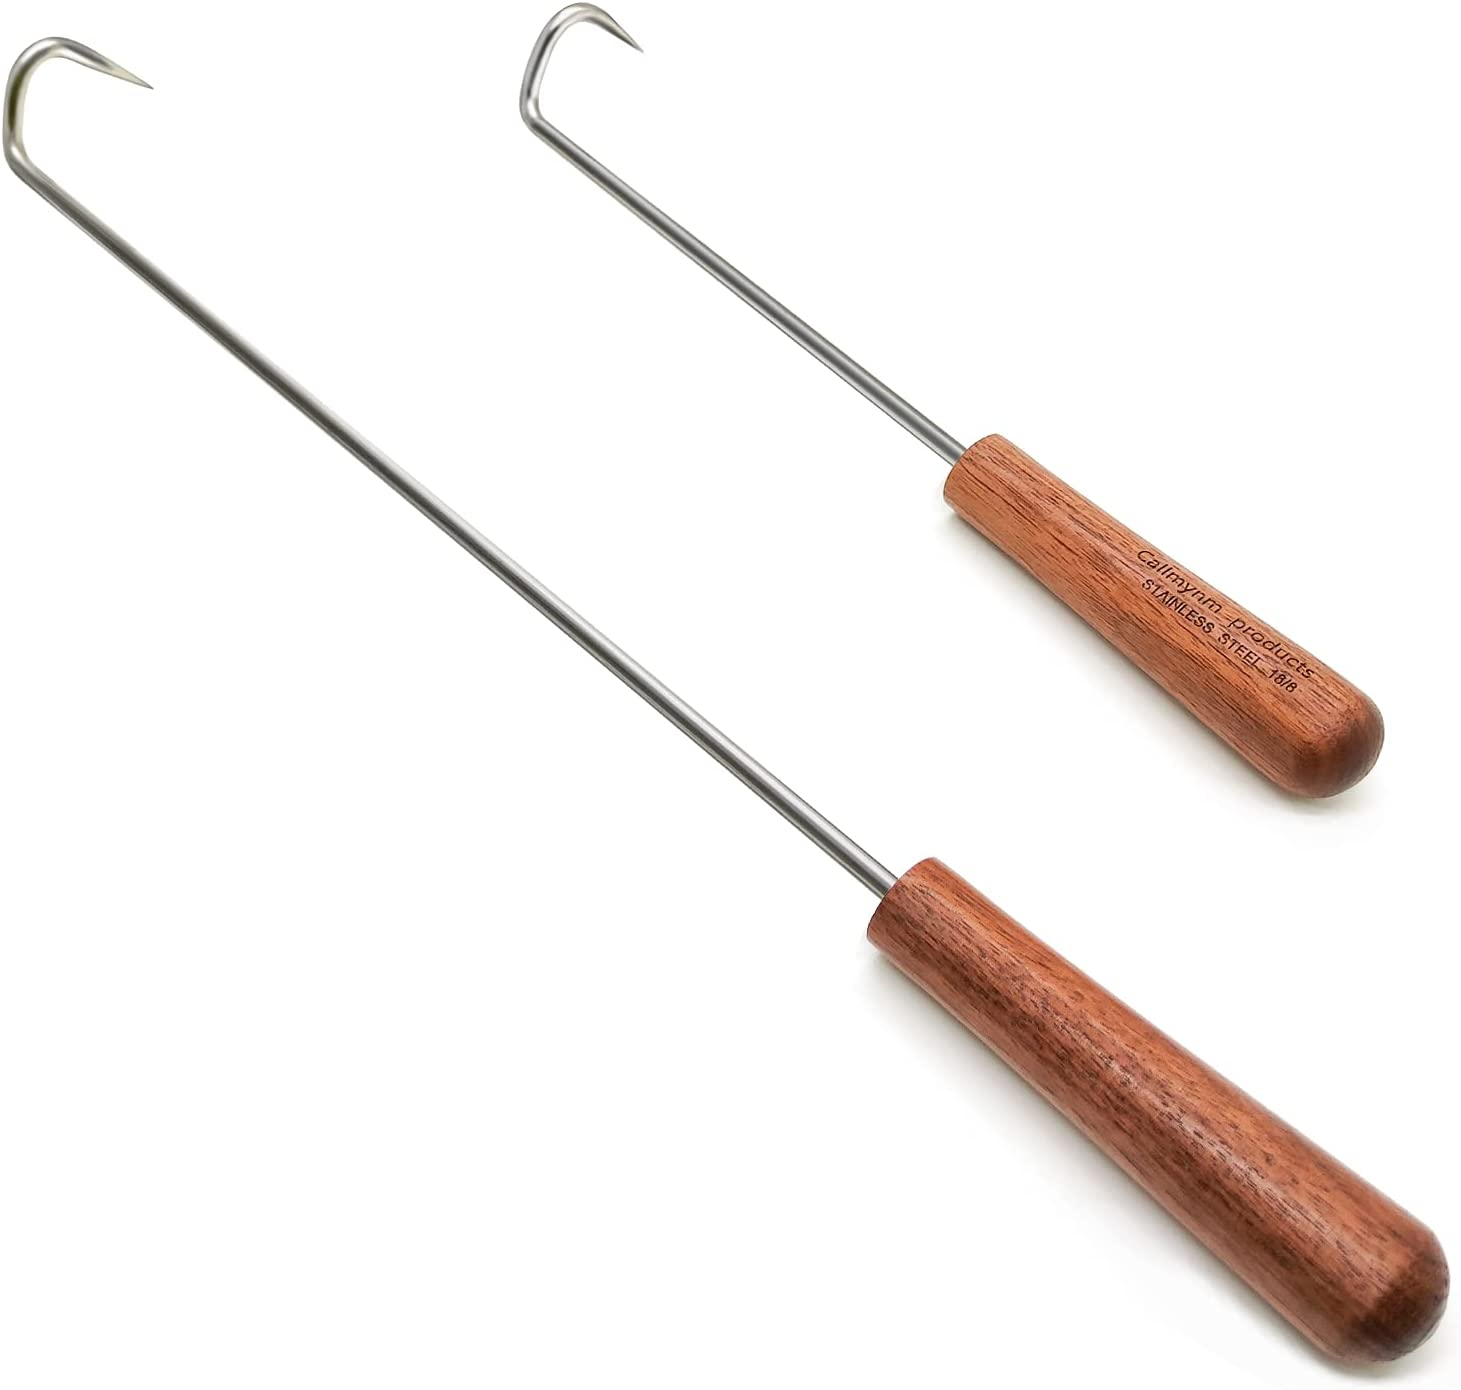 Callmynm 304 Stainless Steel Food Flipper & Turner Hooks - Large + Small Barbecue & Cooking Turners - Pigtail Meat Hook with Wooden Handle for Grilling & Smoking